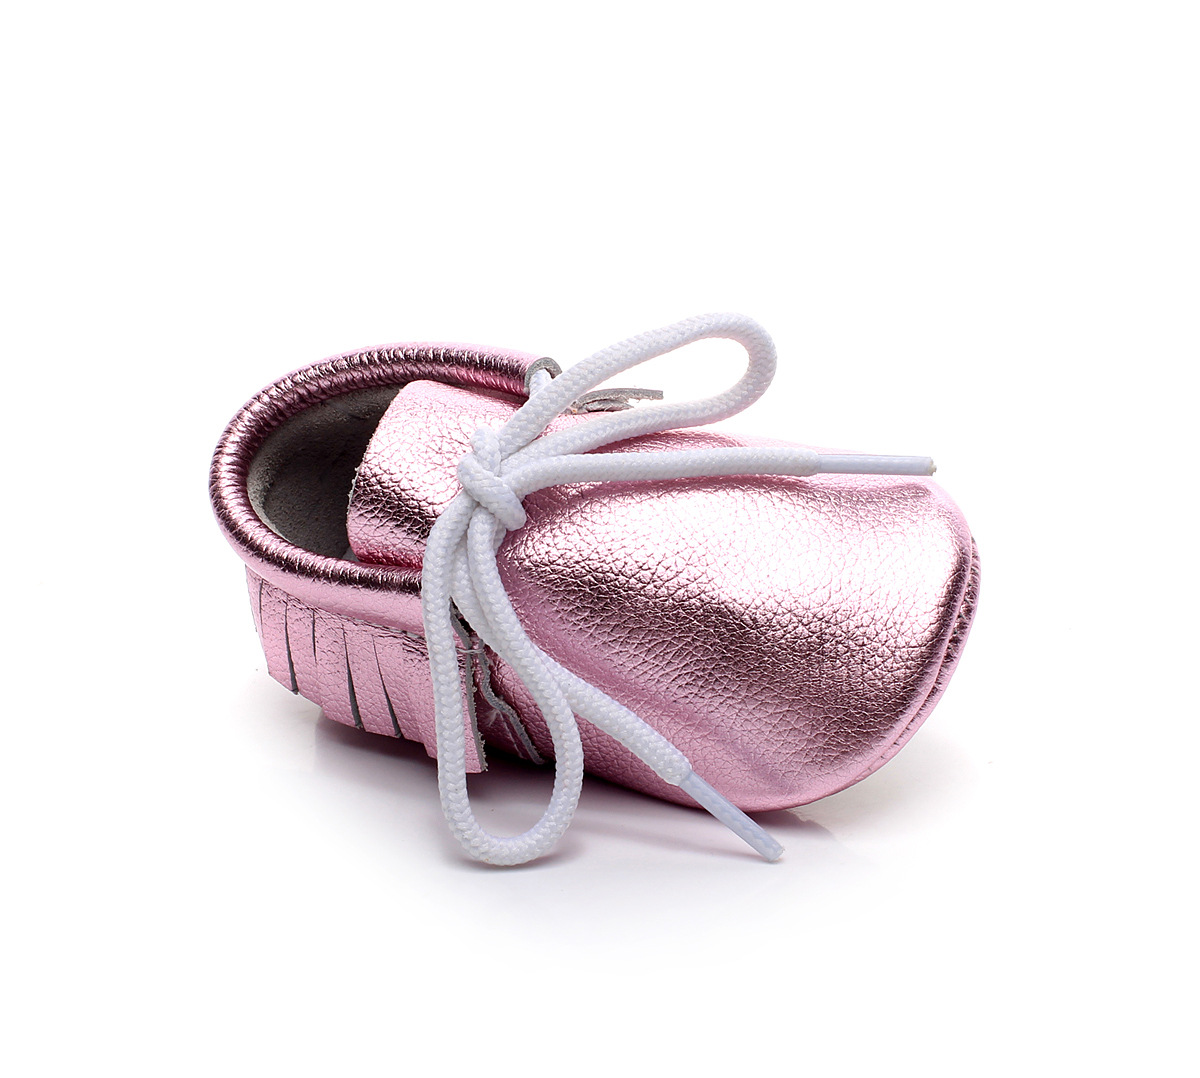 HONGTEYA Leather Baby Moccasins Boots Hard Sole Lace Up Genuine Leather Girl Boys Handmade Toddler Shoes